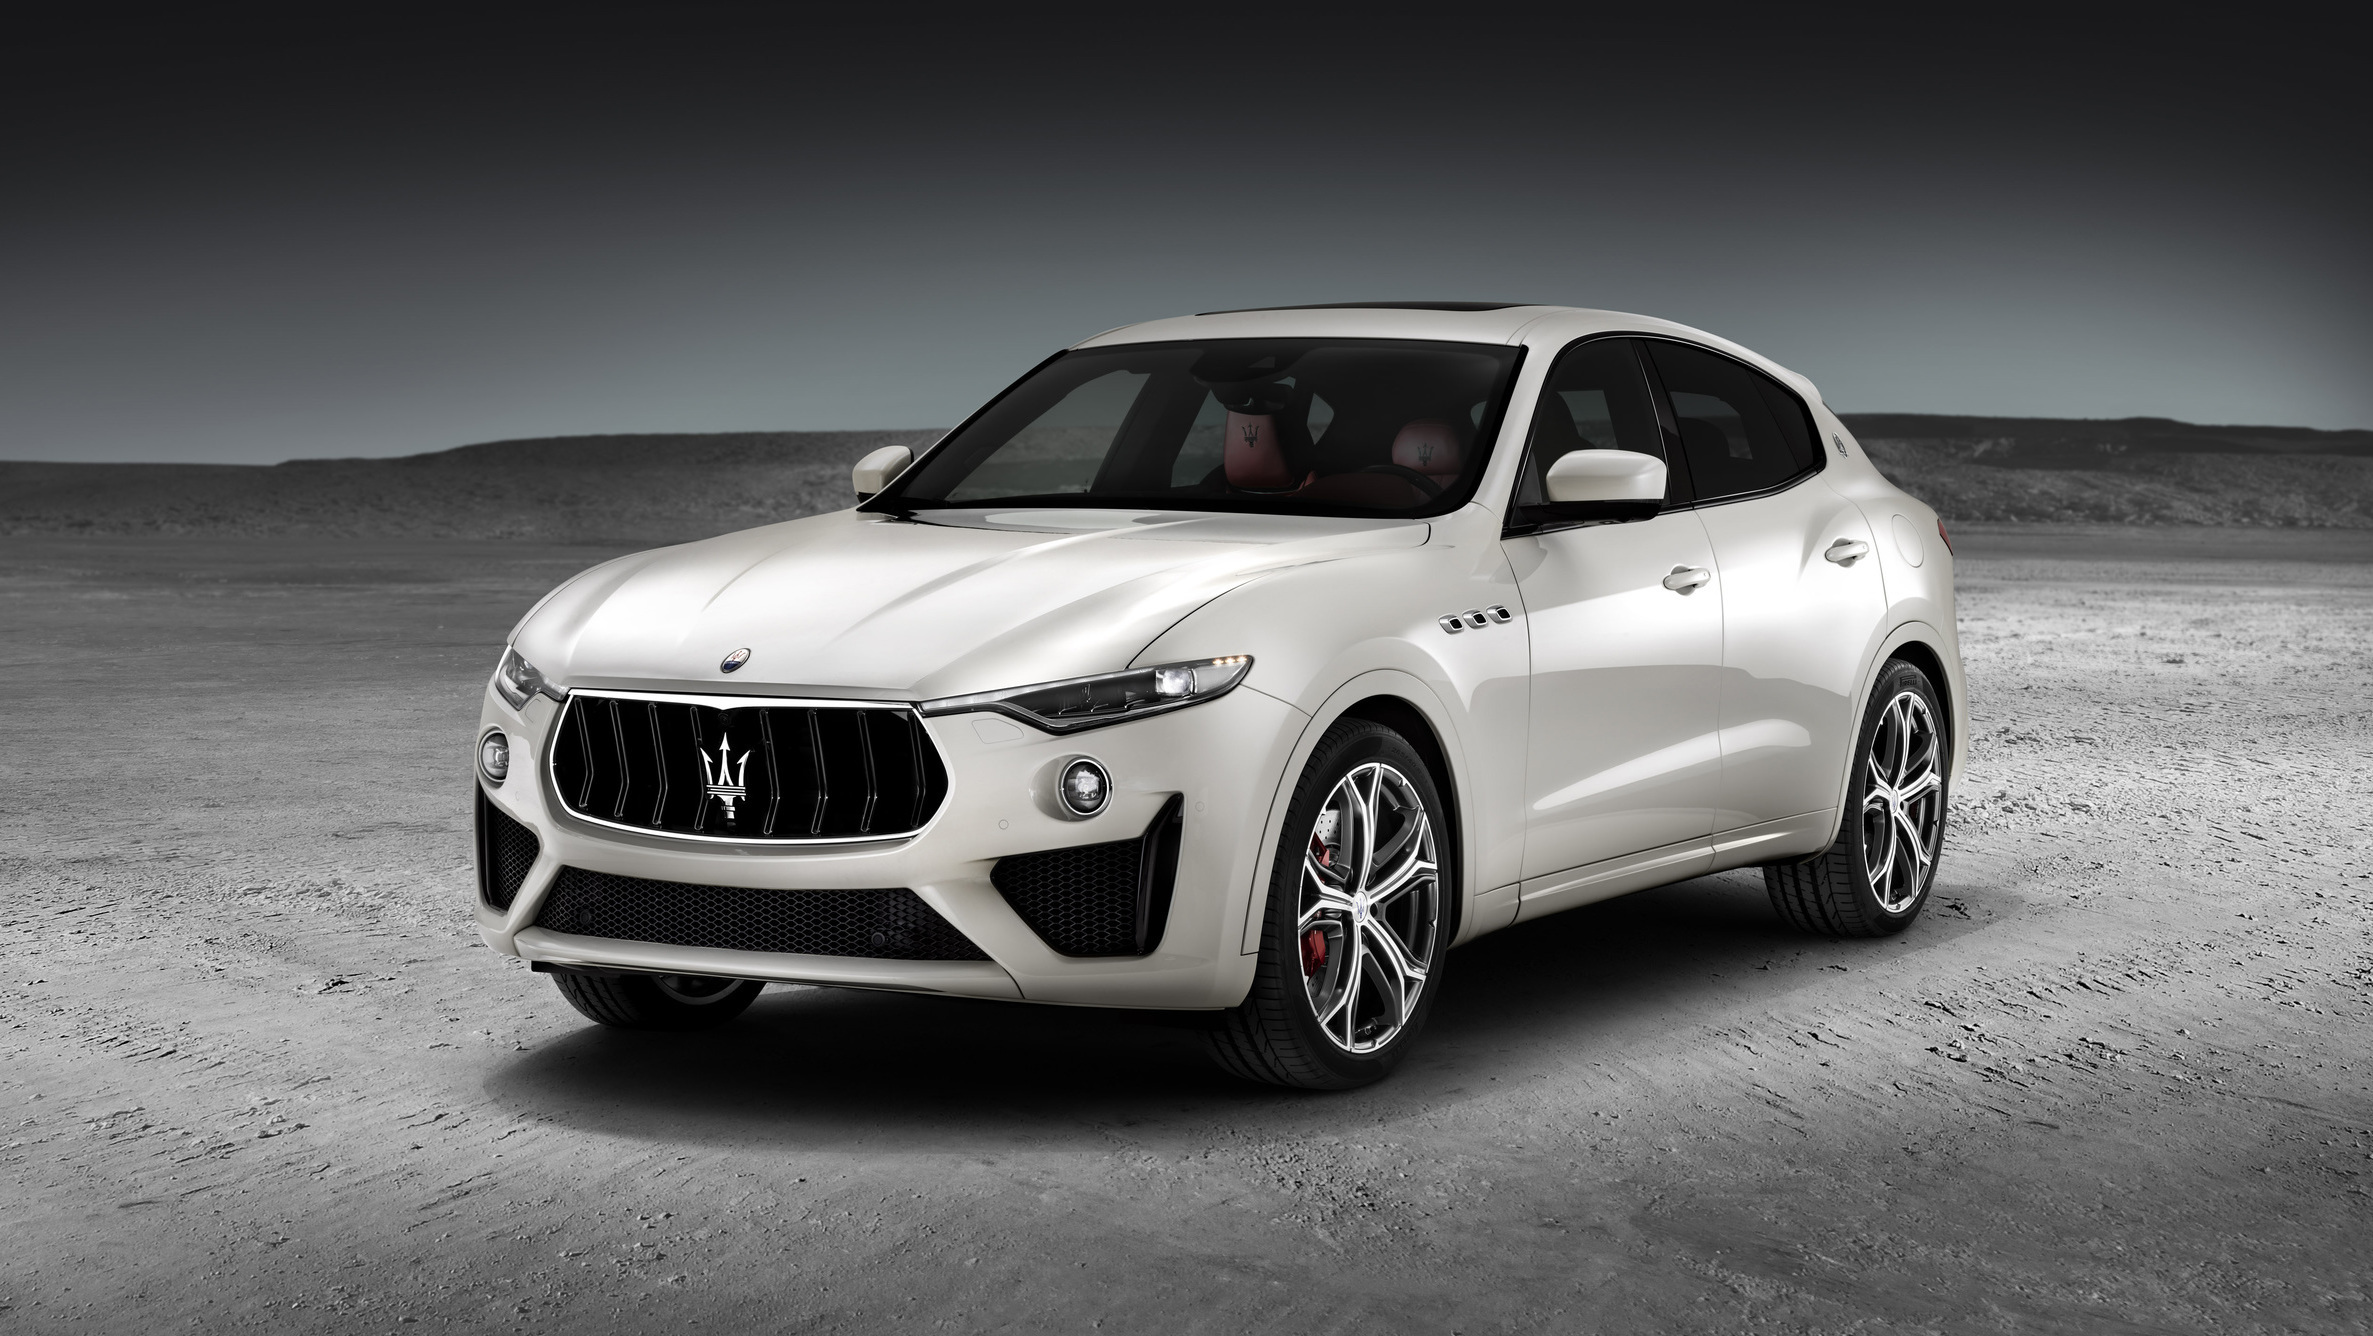 Maserati launches the 2019 Levante GTS with a 550 horsepower Ferrari V8 engine